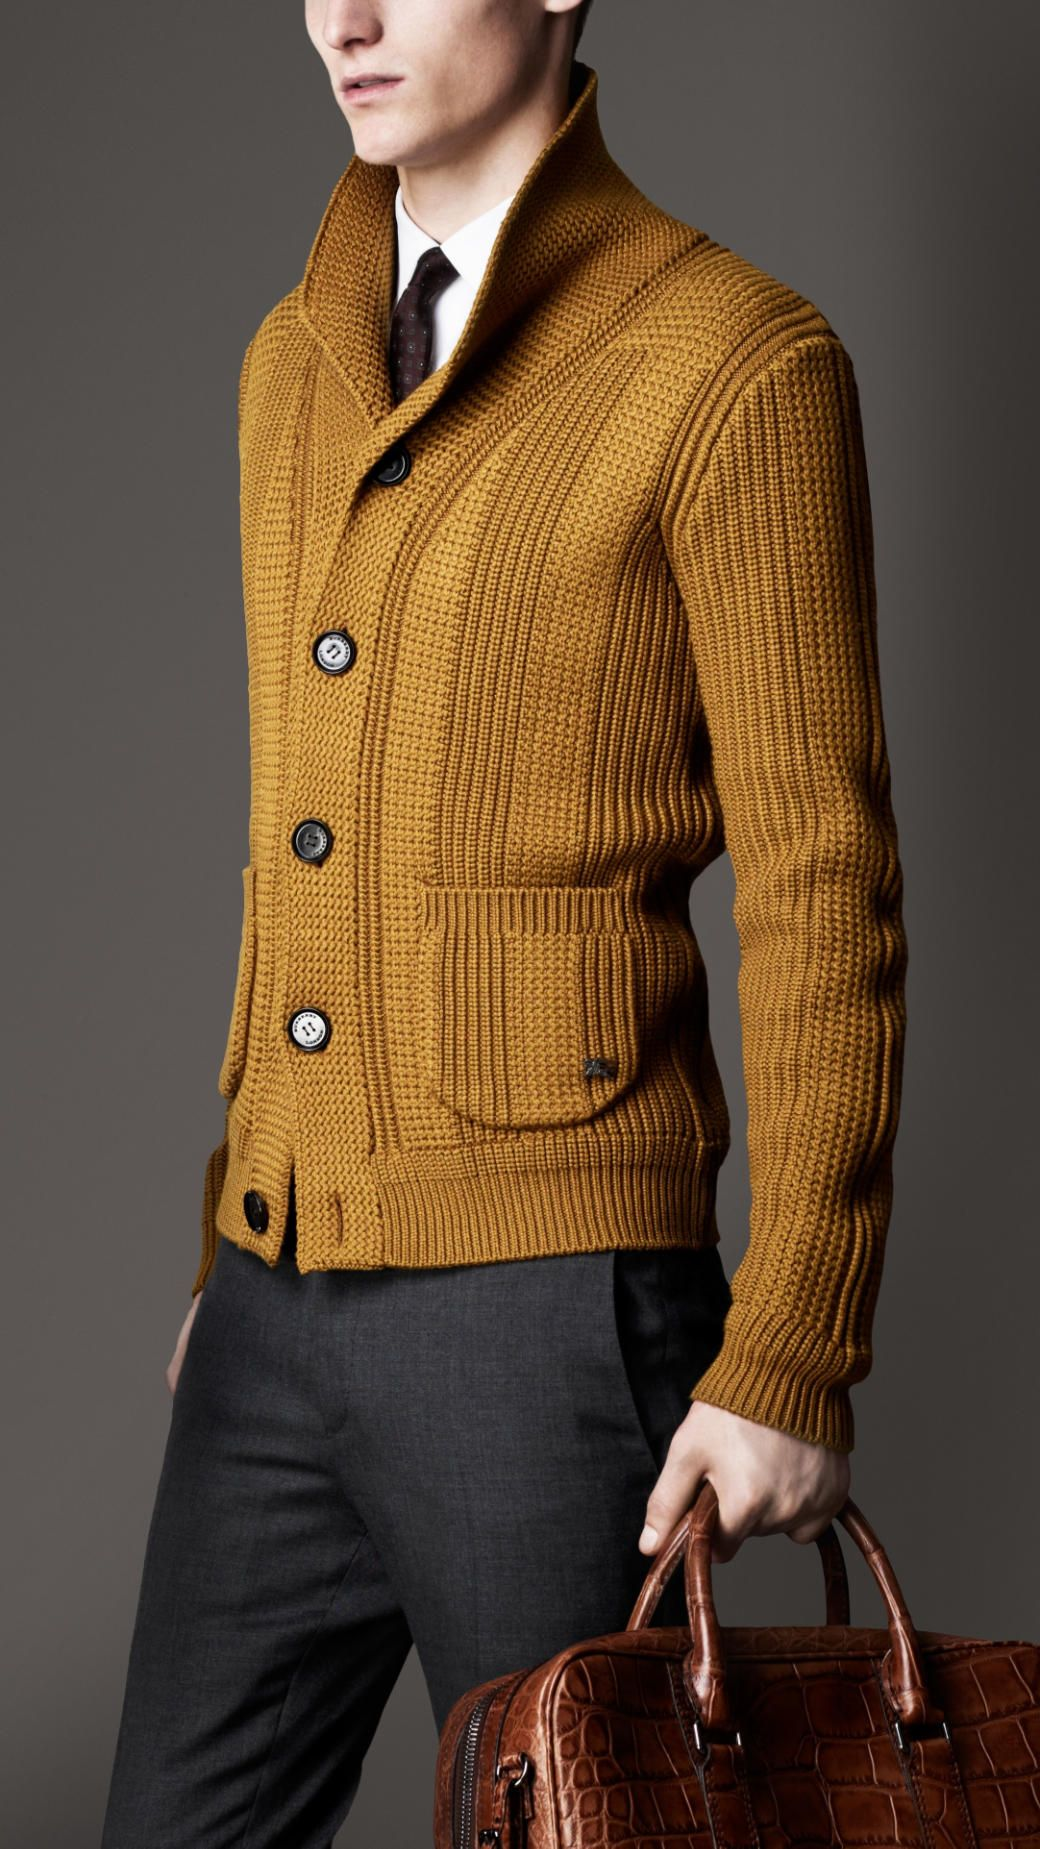 Men's Knitted Sweaters & Cardigans | Knit jacket, Men's fashion ...